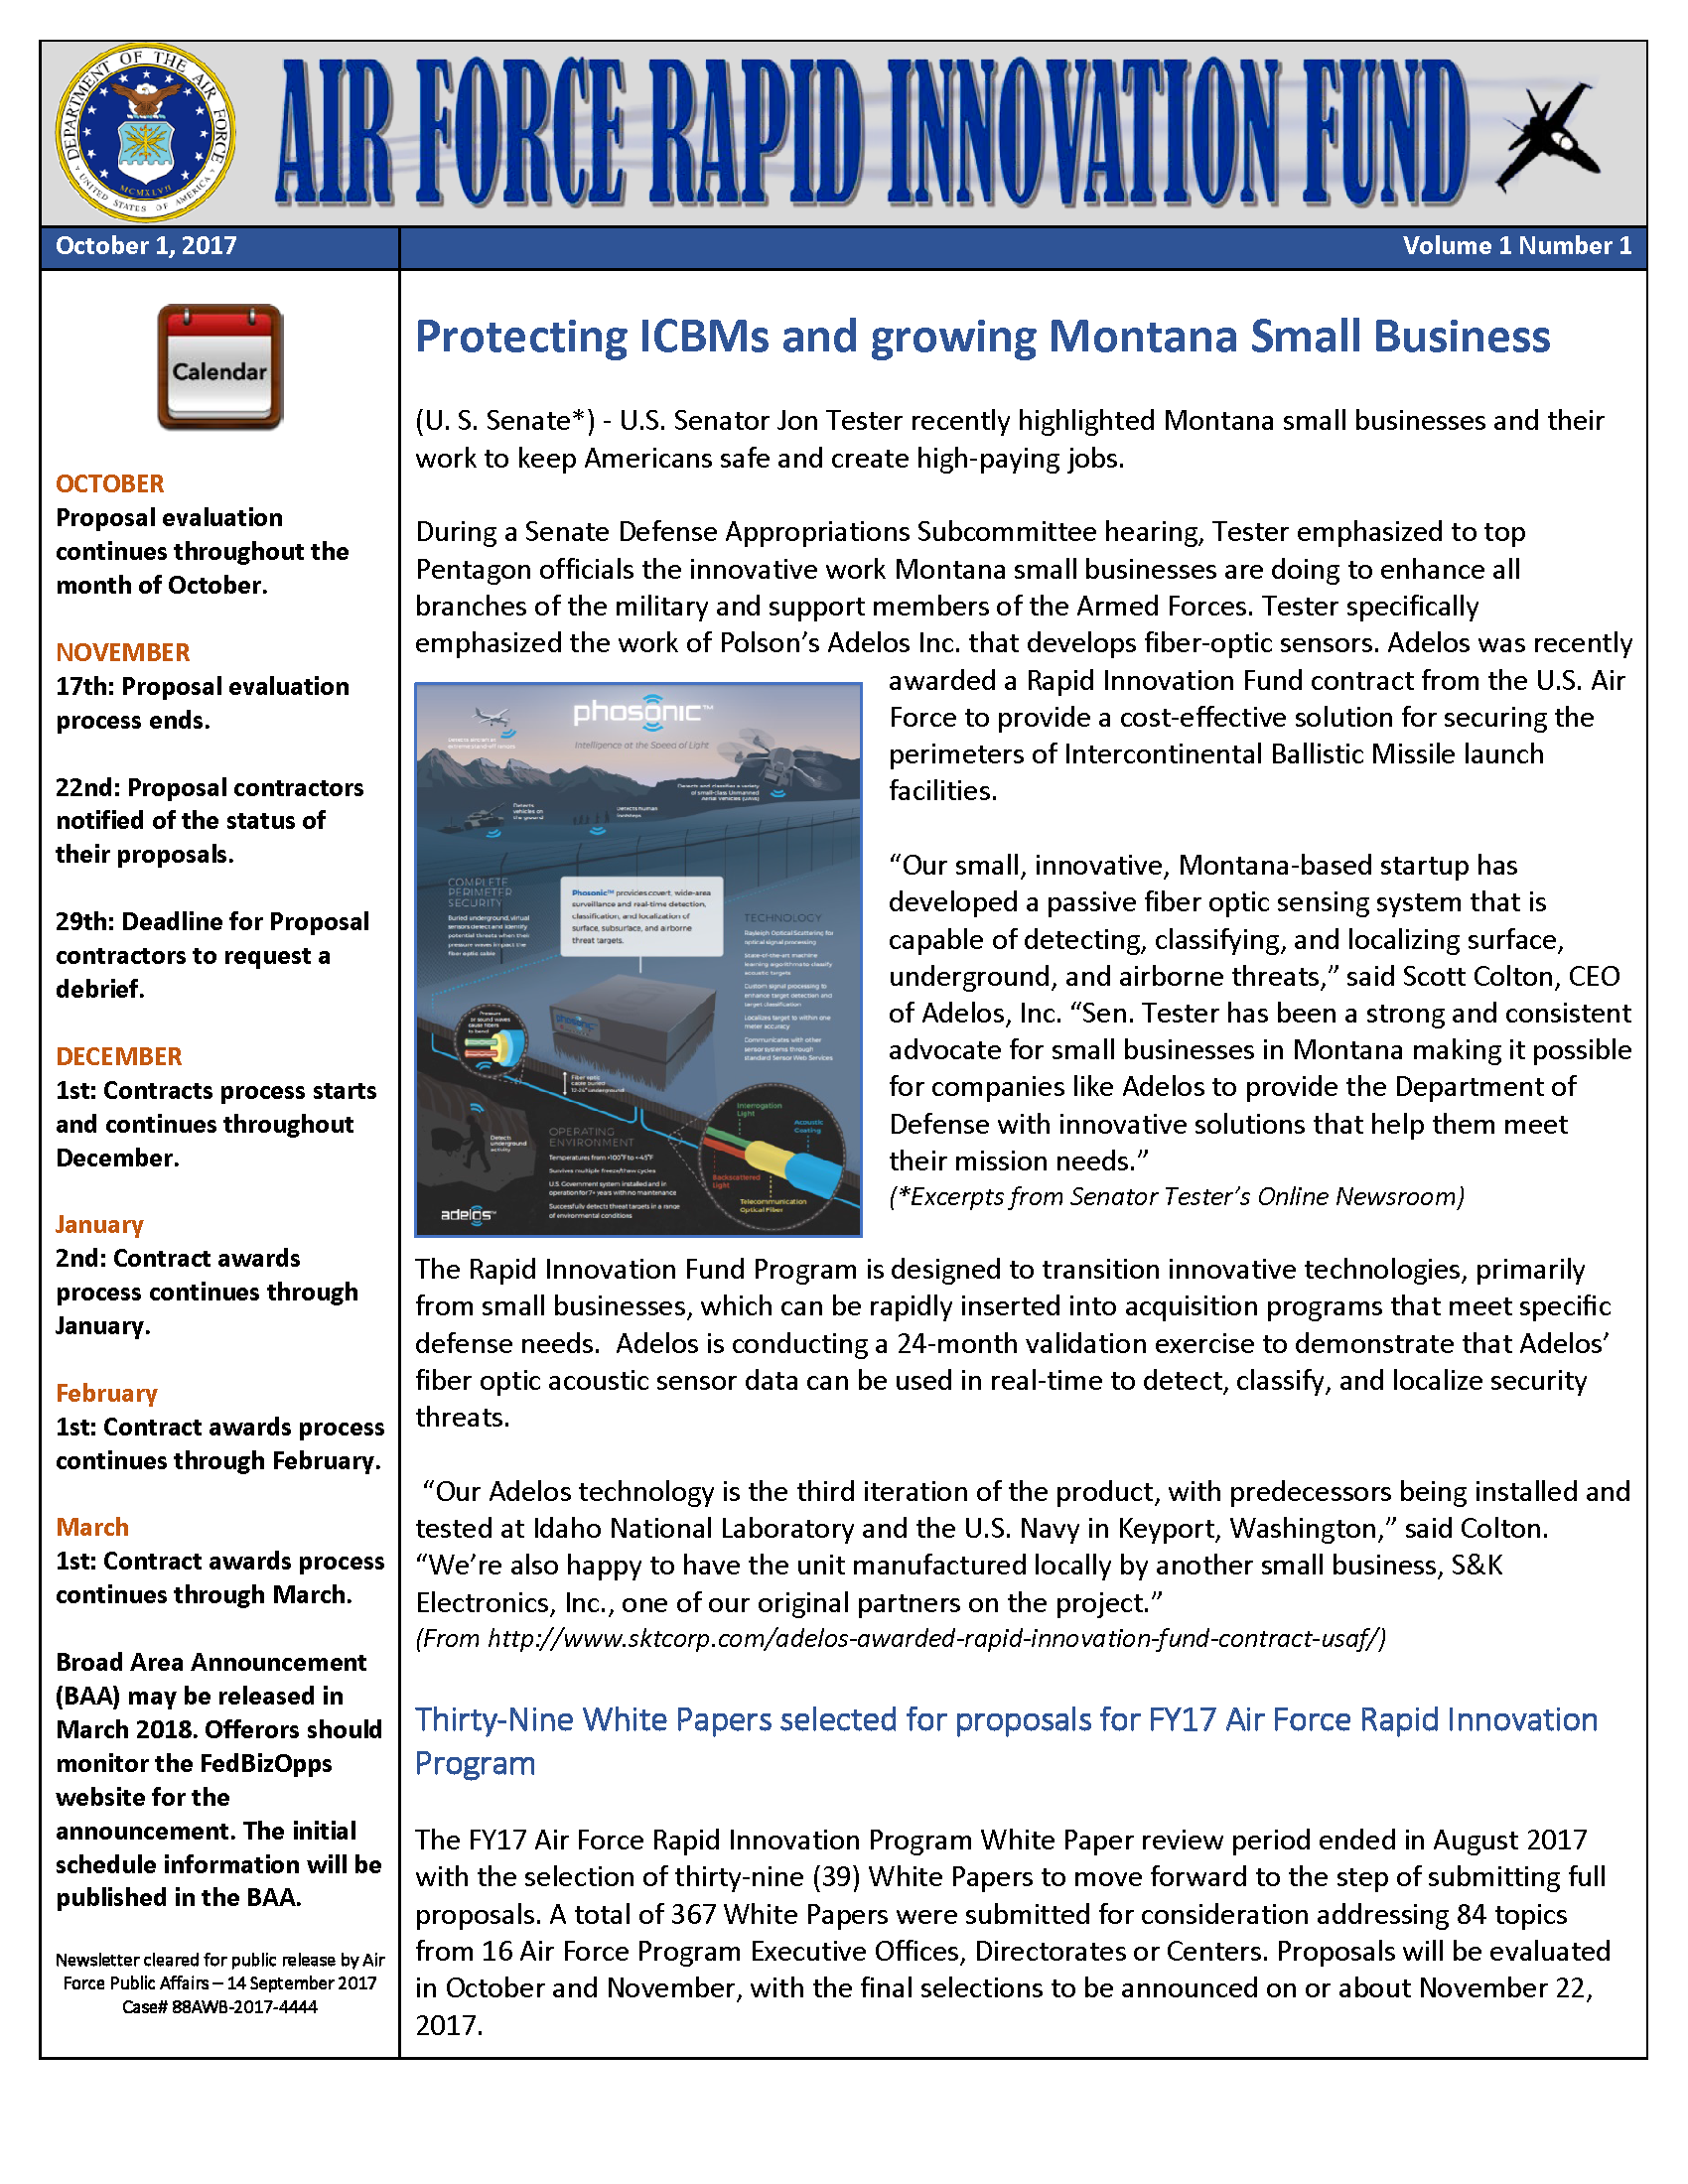 U.S. Air Force - Rapid Innovation Fund (RIF) Newsletter Story about Adelos